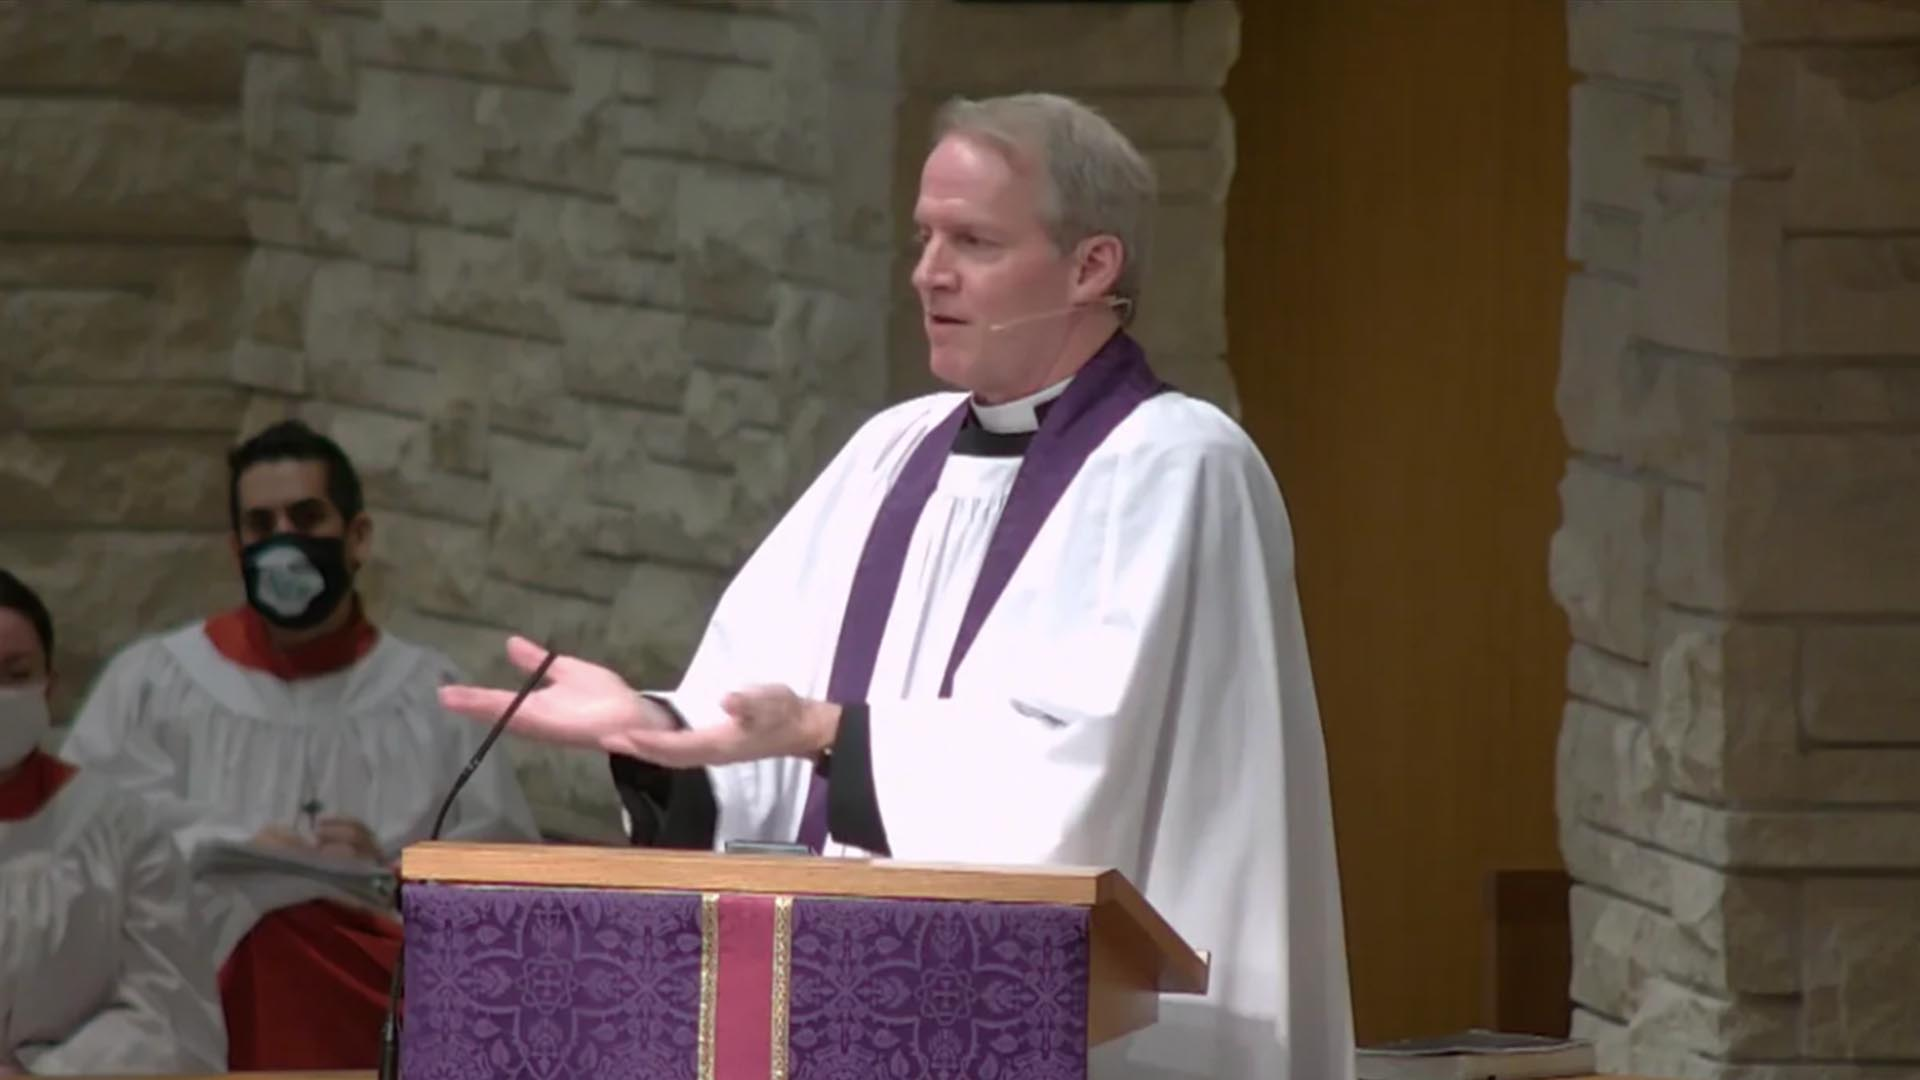 The Most Important Thing About You - Sermon by the Rev. Dr. R. Leigh Spruill